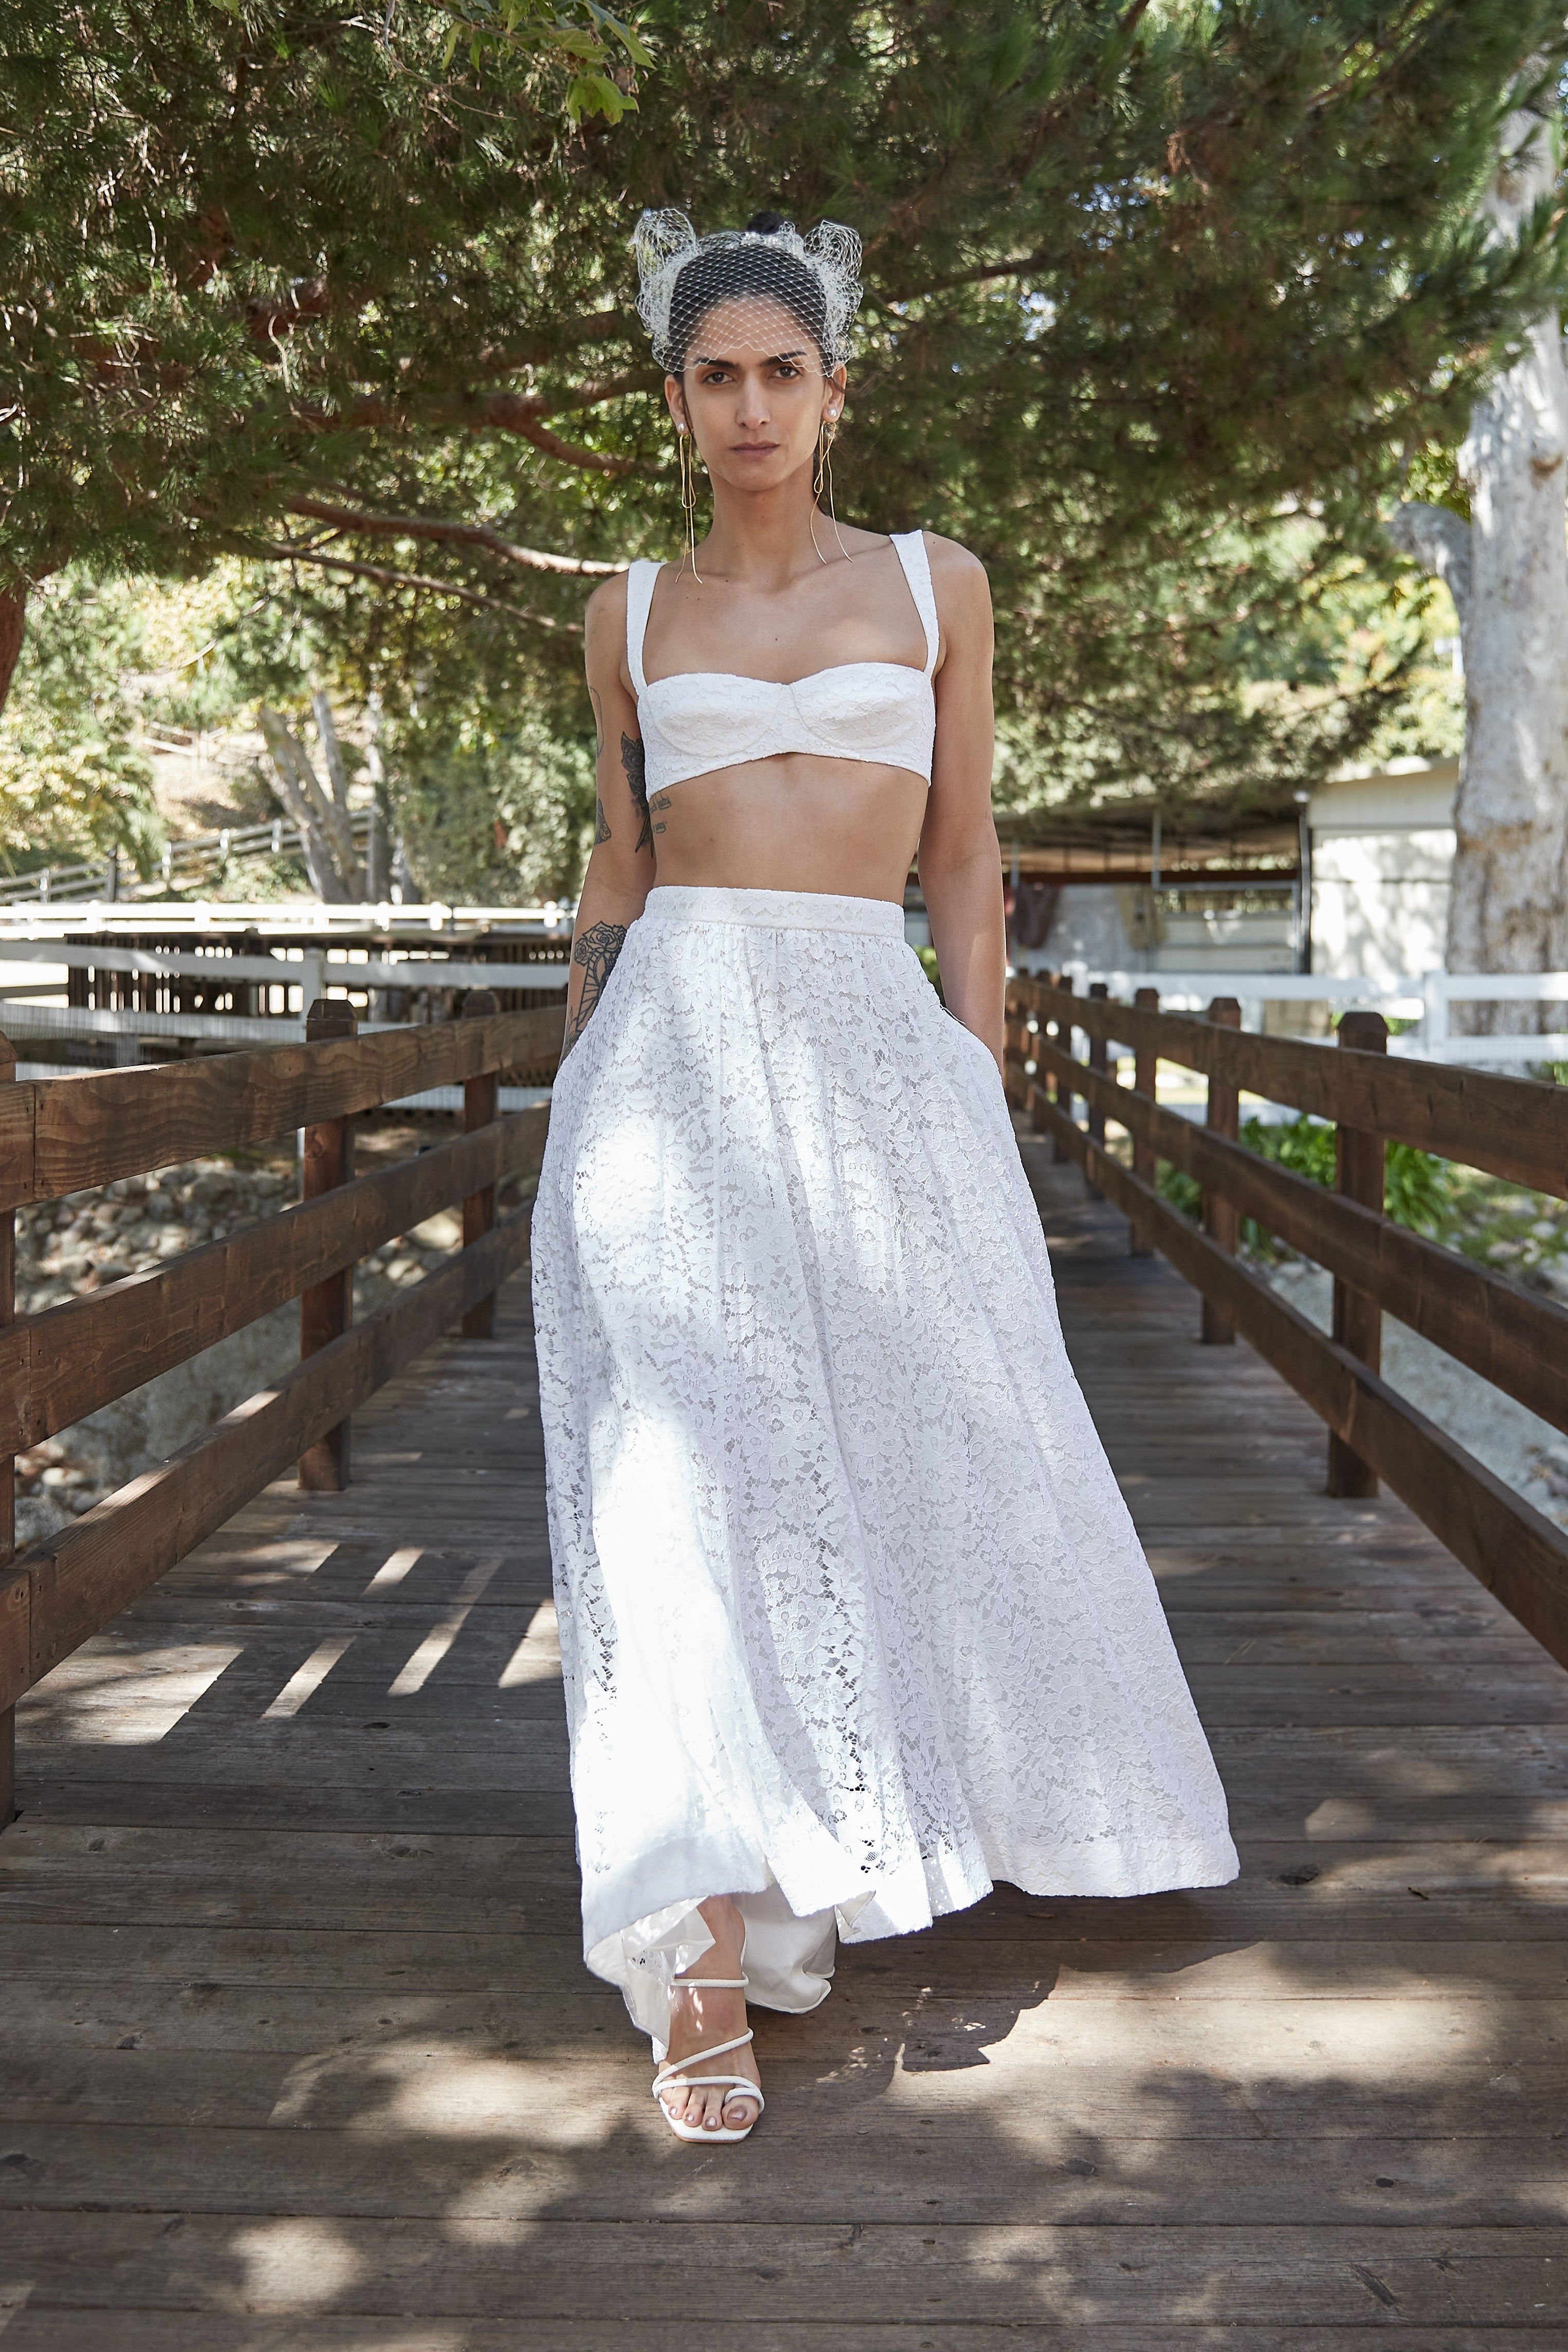 14 Non-Traditional Wedding Looks For Modern Brides